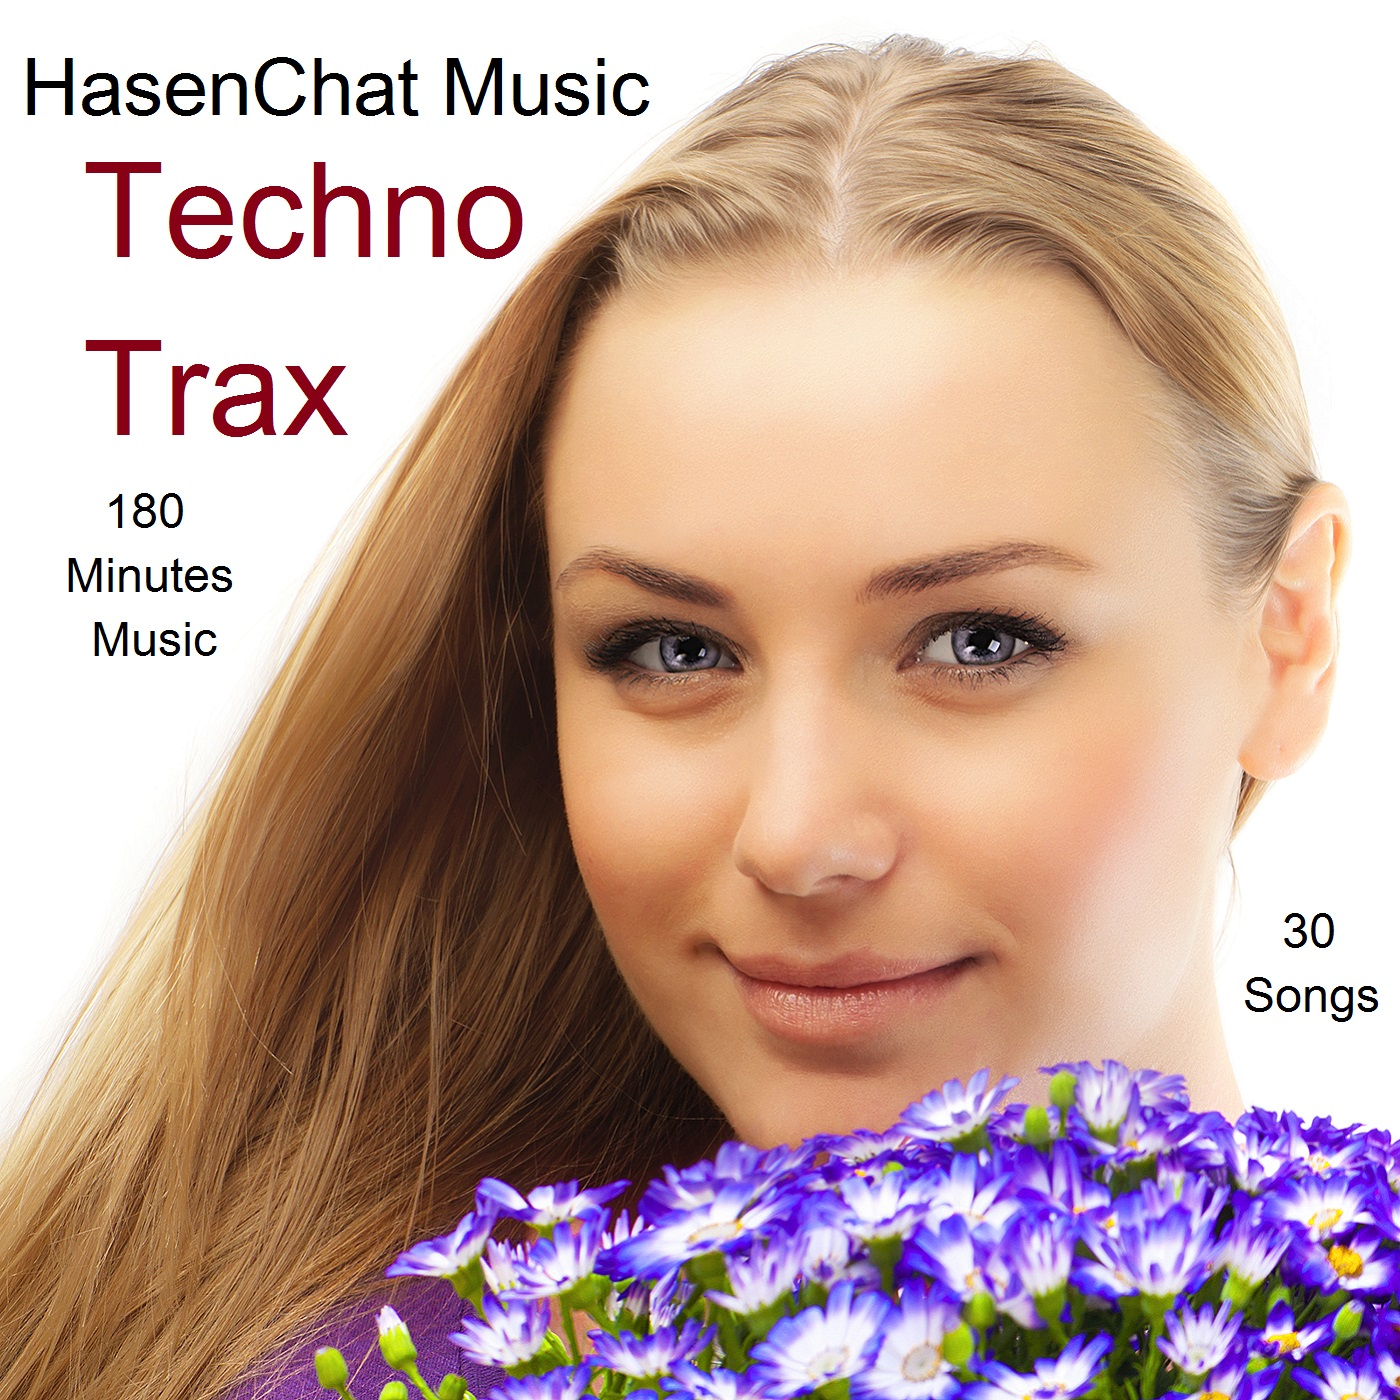 HasenChat Music - Techno Trax - Episode 1